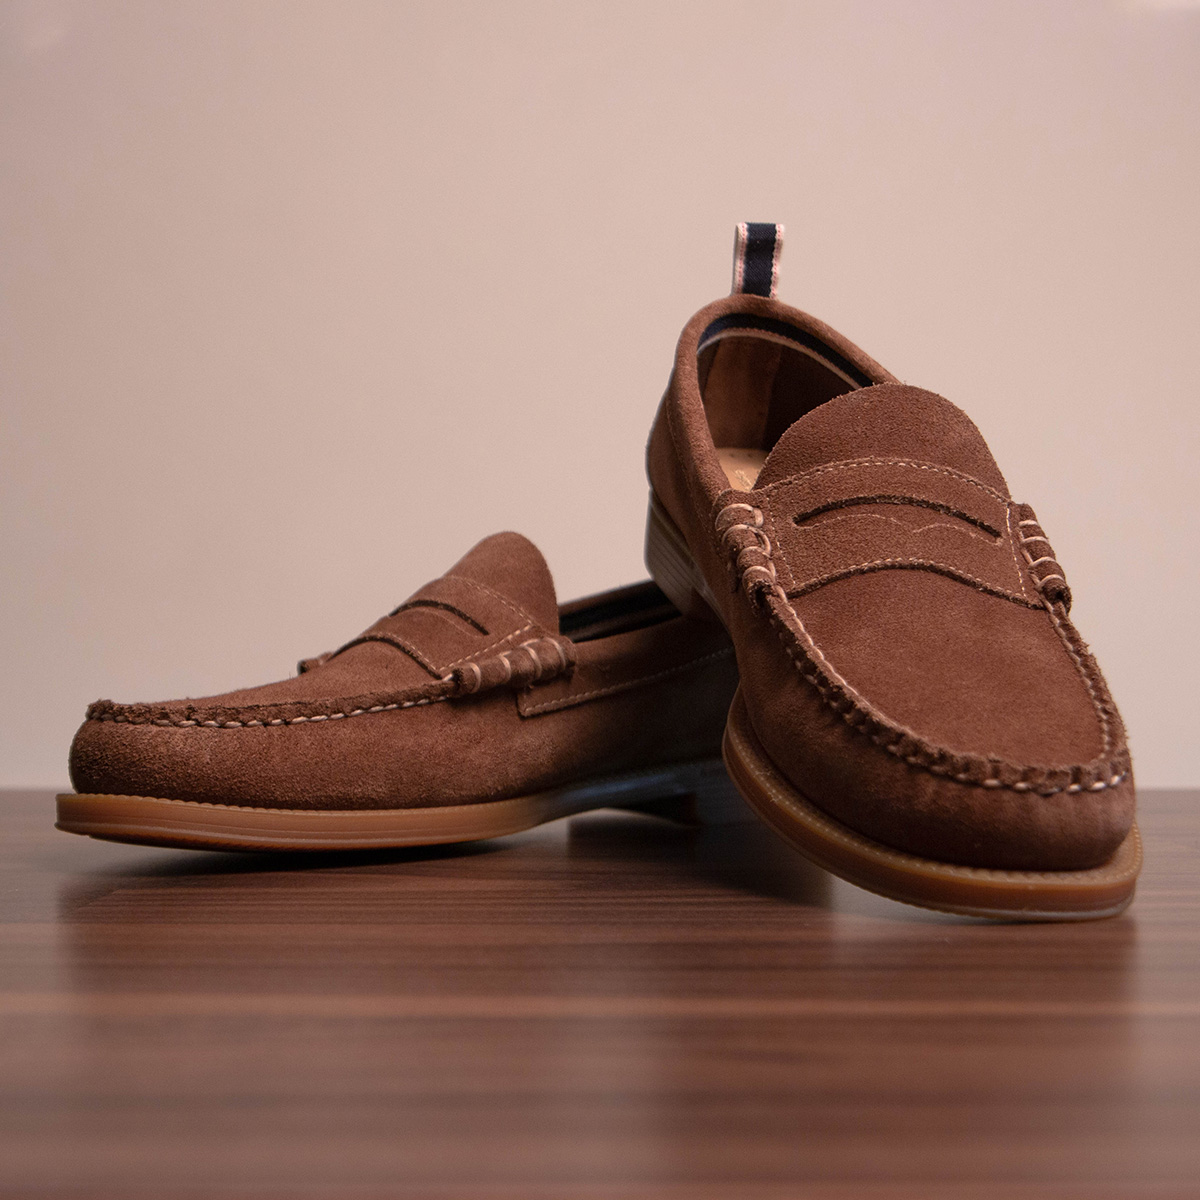 Some brown GH Bass Shoes